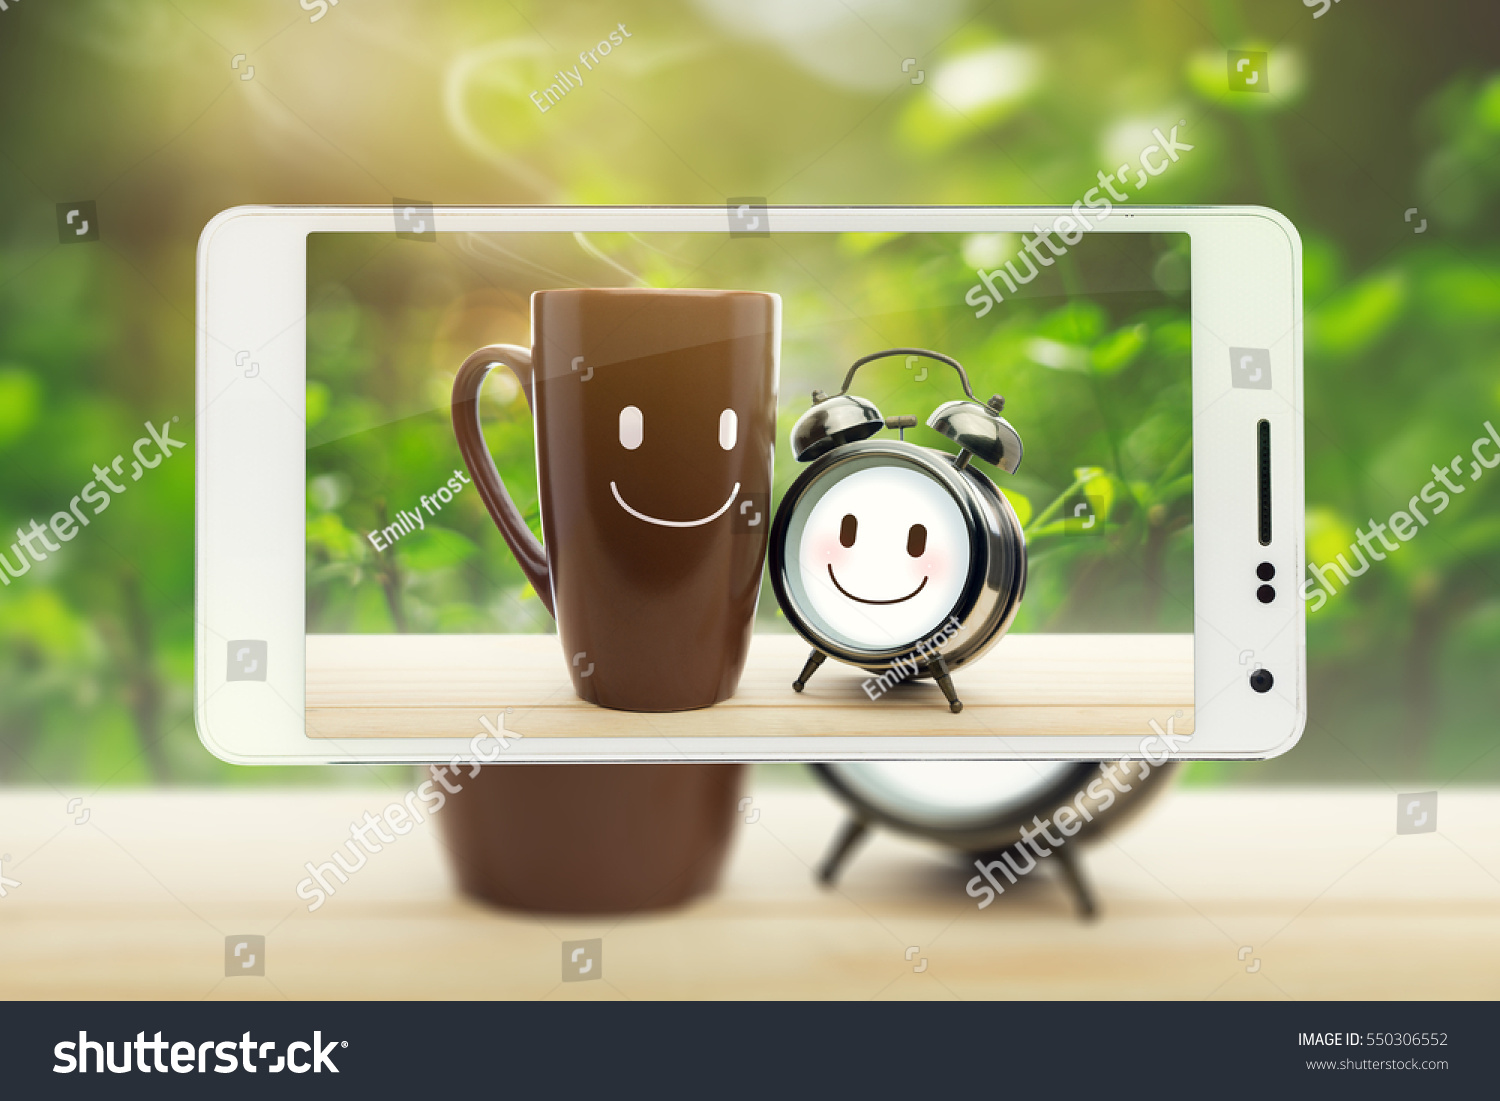 Brown Mug Alarm Clock Happy Smile Stock Photo Edit Now 550306552 Frost And With A Good Morning Or Have